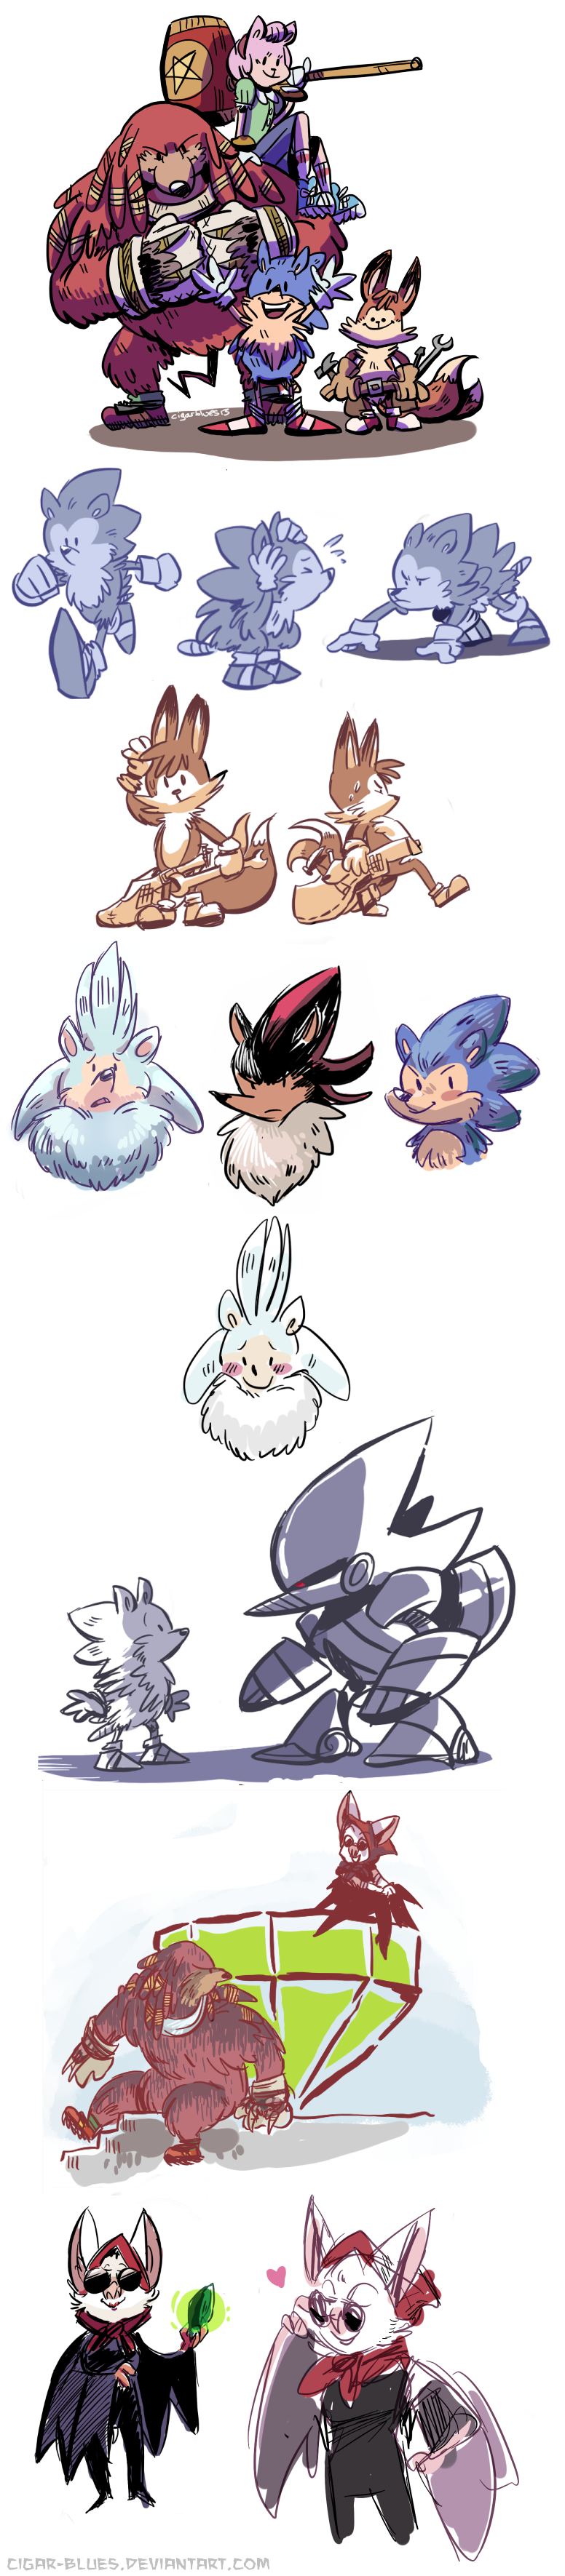 Sonic the Hedgehog doodles by cigar-blues